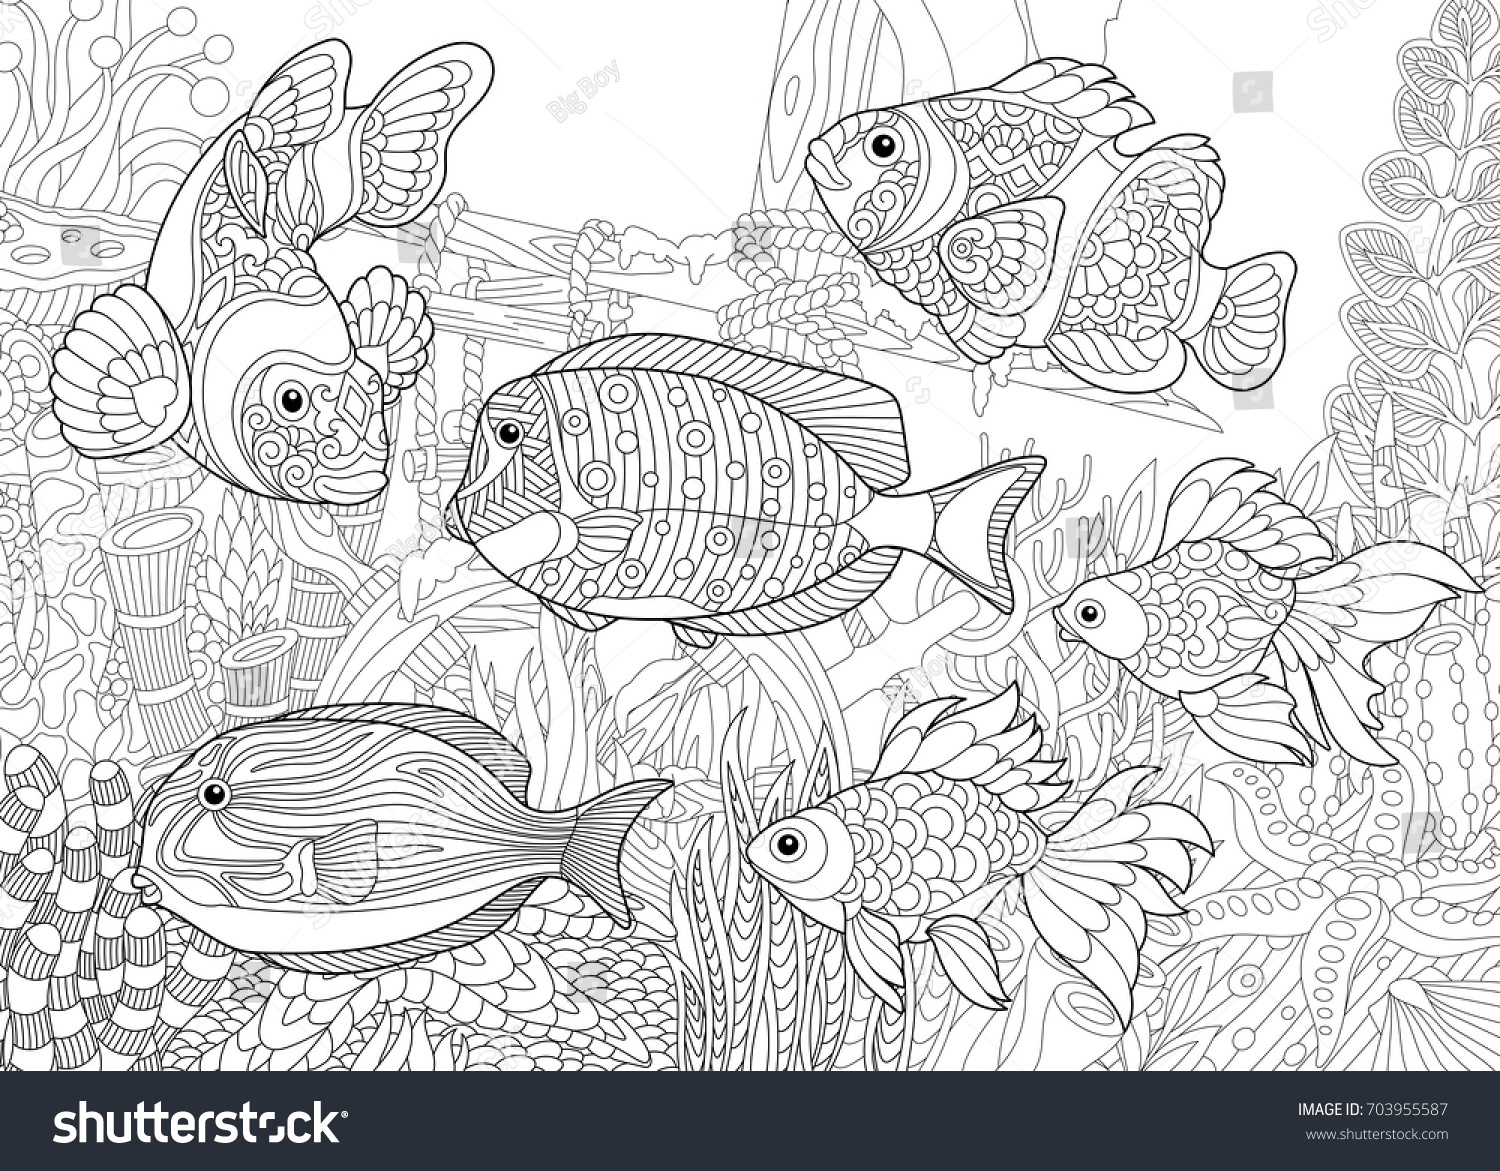 Coloring Page Underwater World Different Fish Stock Vector (Royalty ...